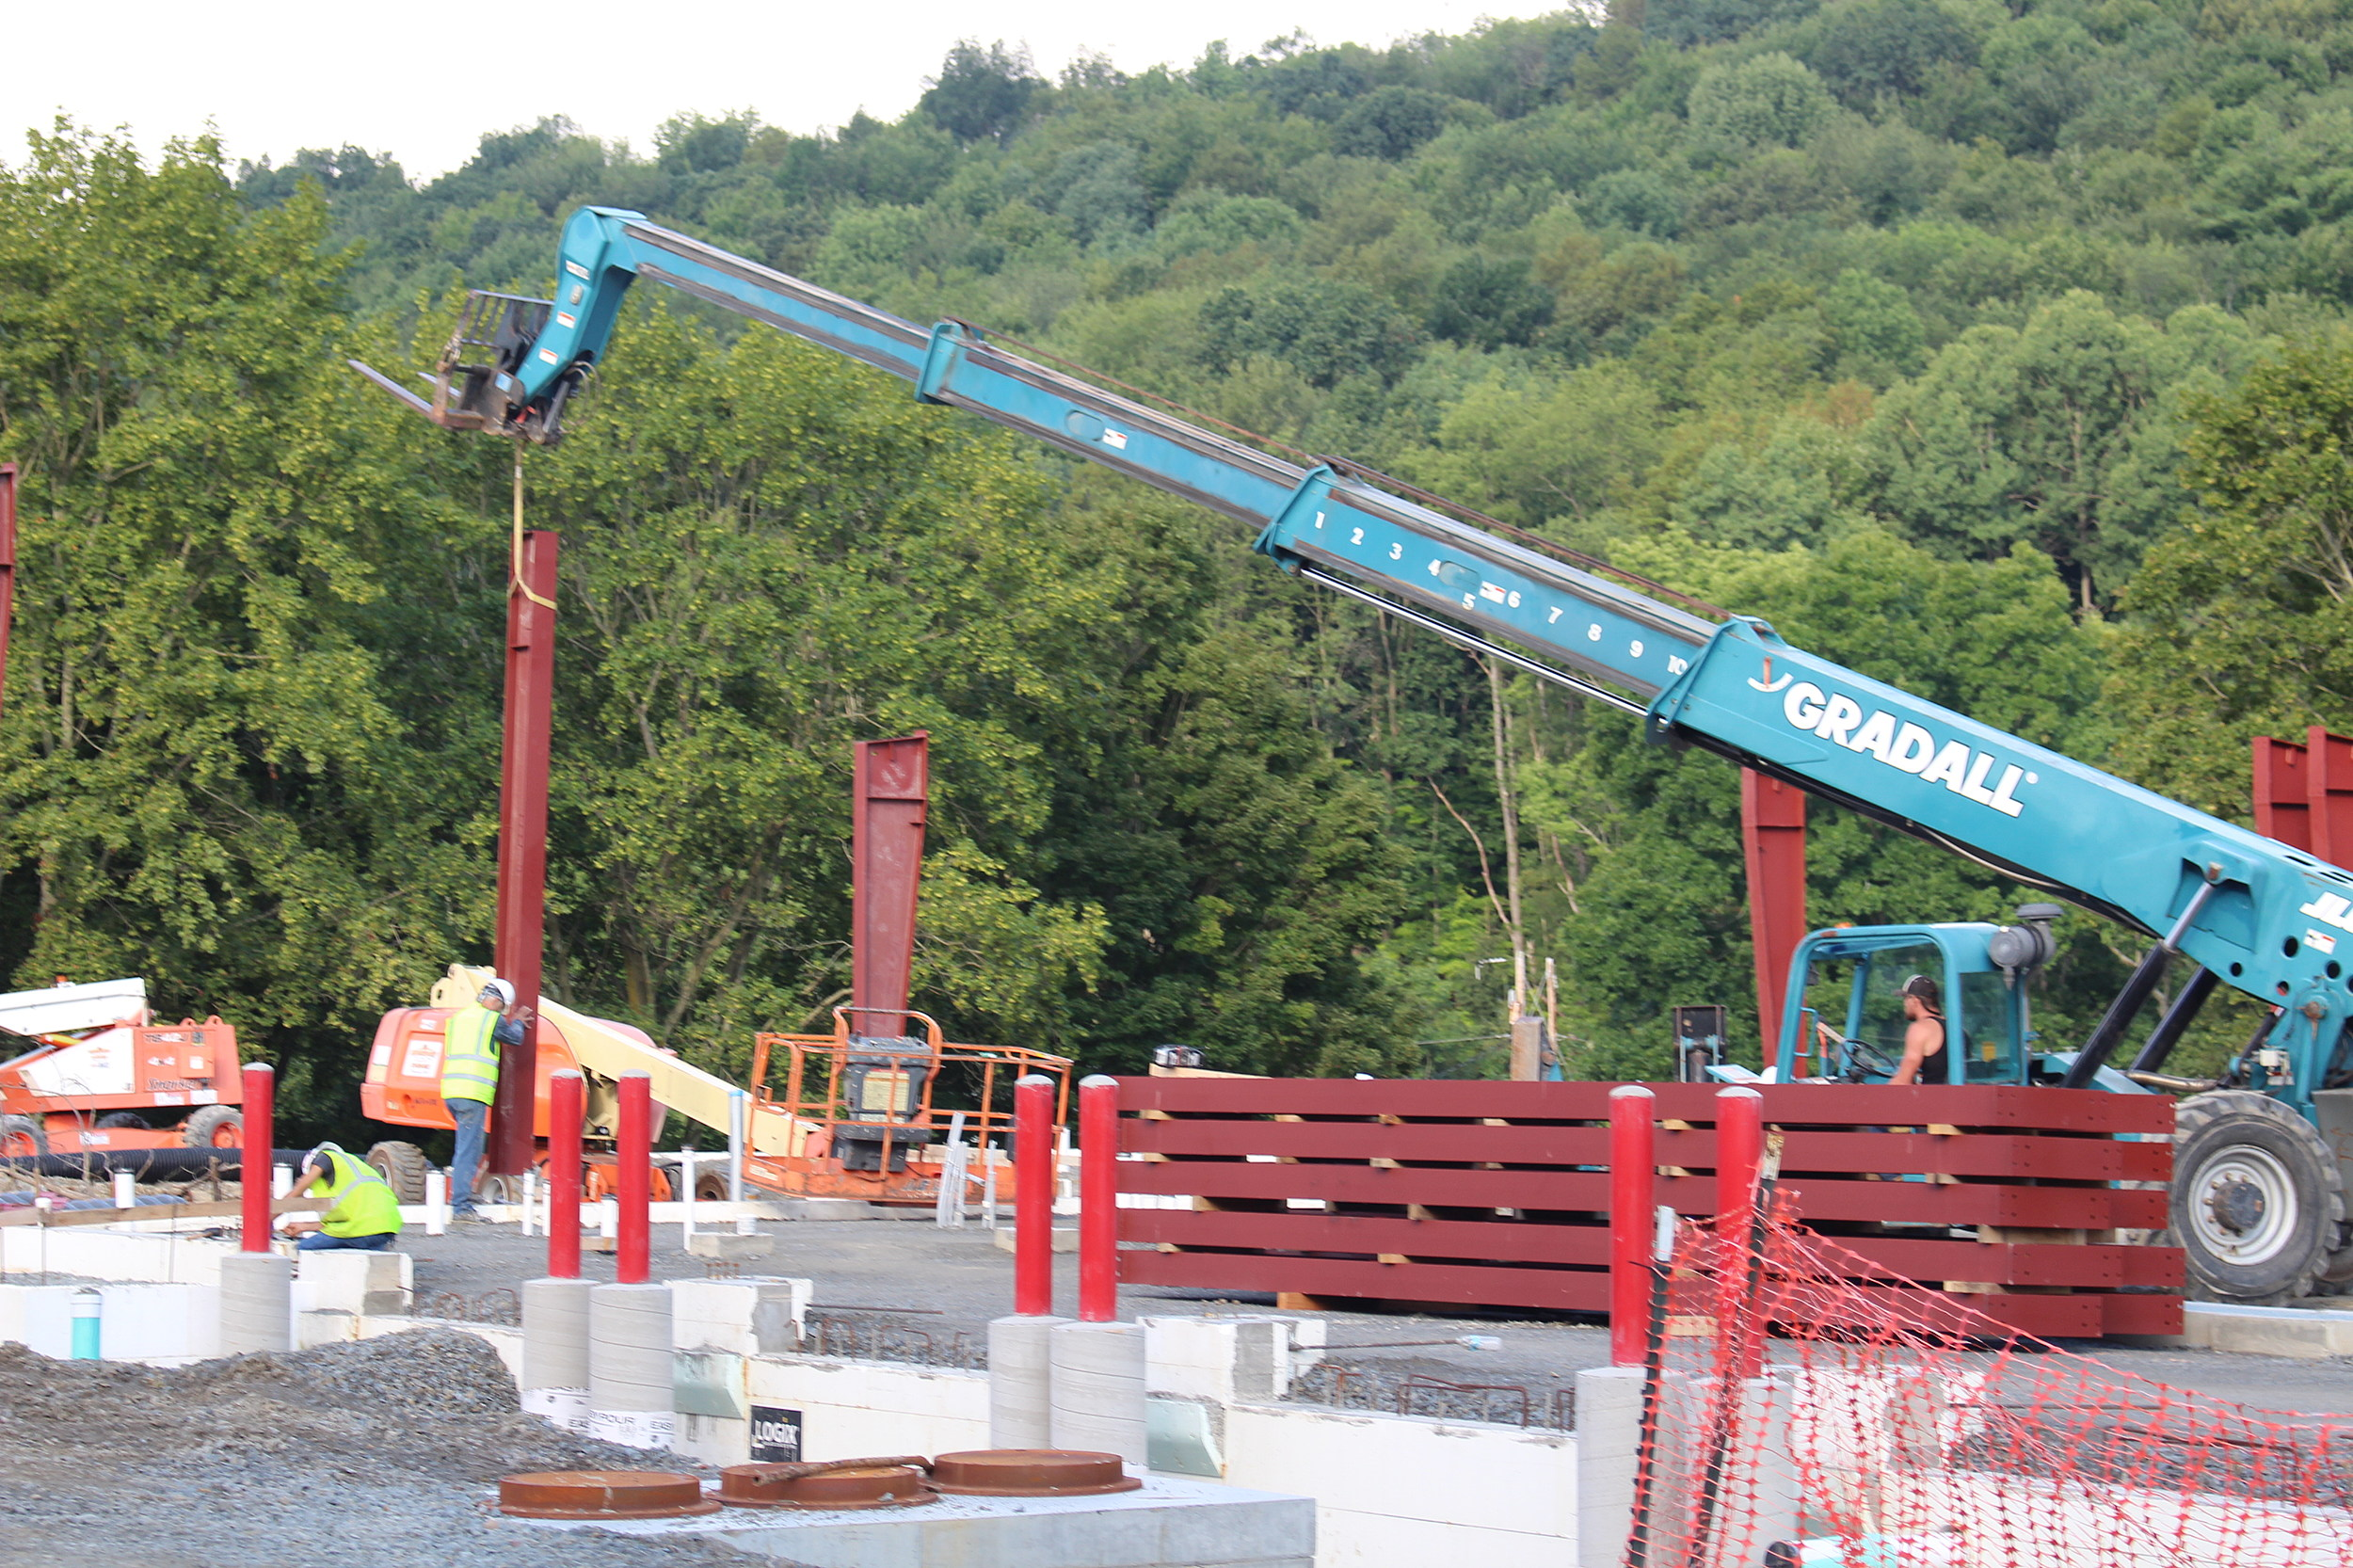 A steel section being put into place at the site of the future Apalachin Fire Station on August 8, 2017. (Photo: Bob Joseph/WNBF News)